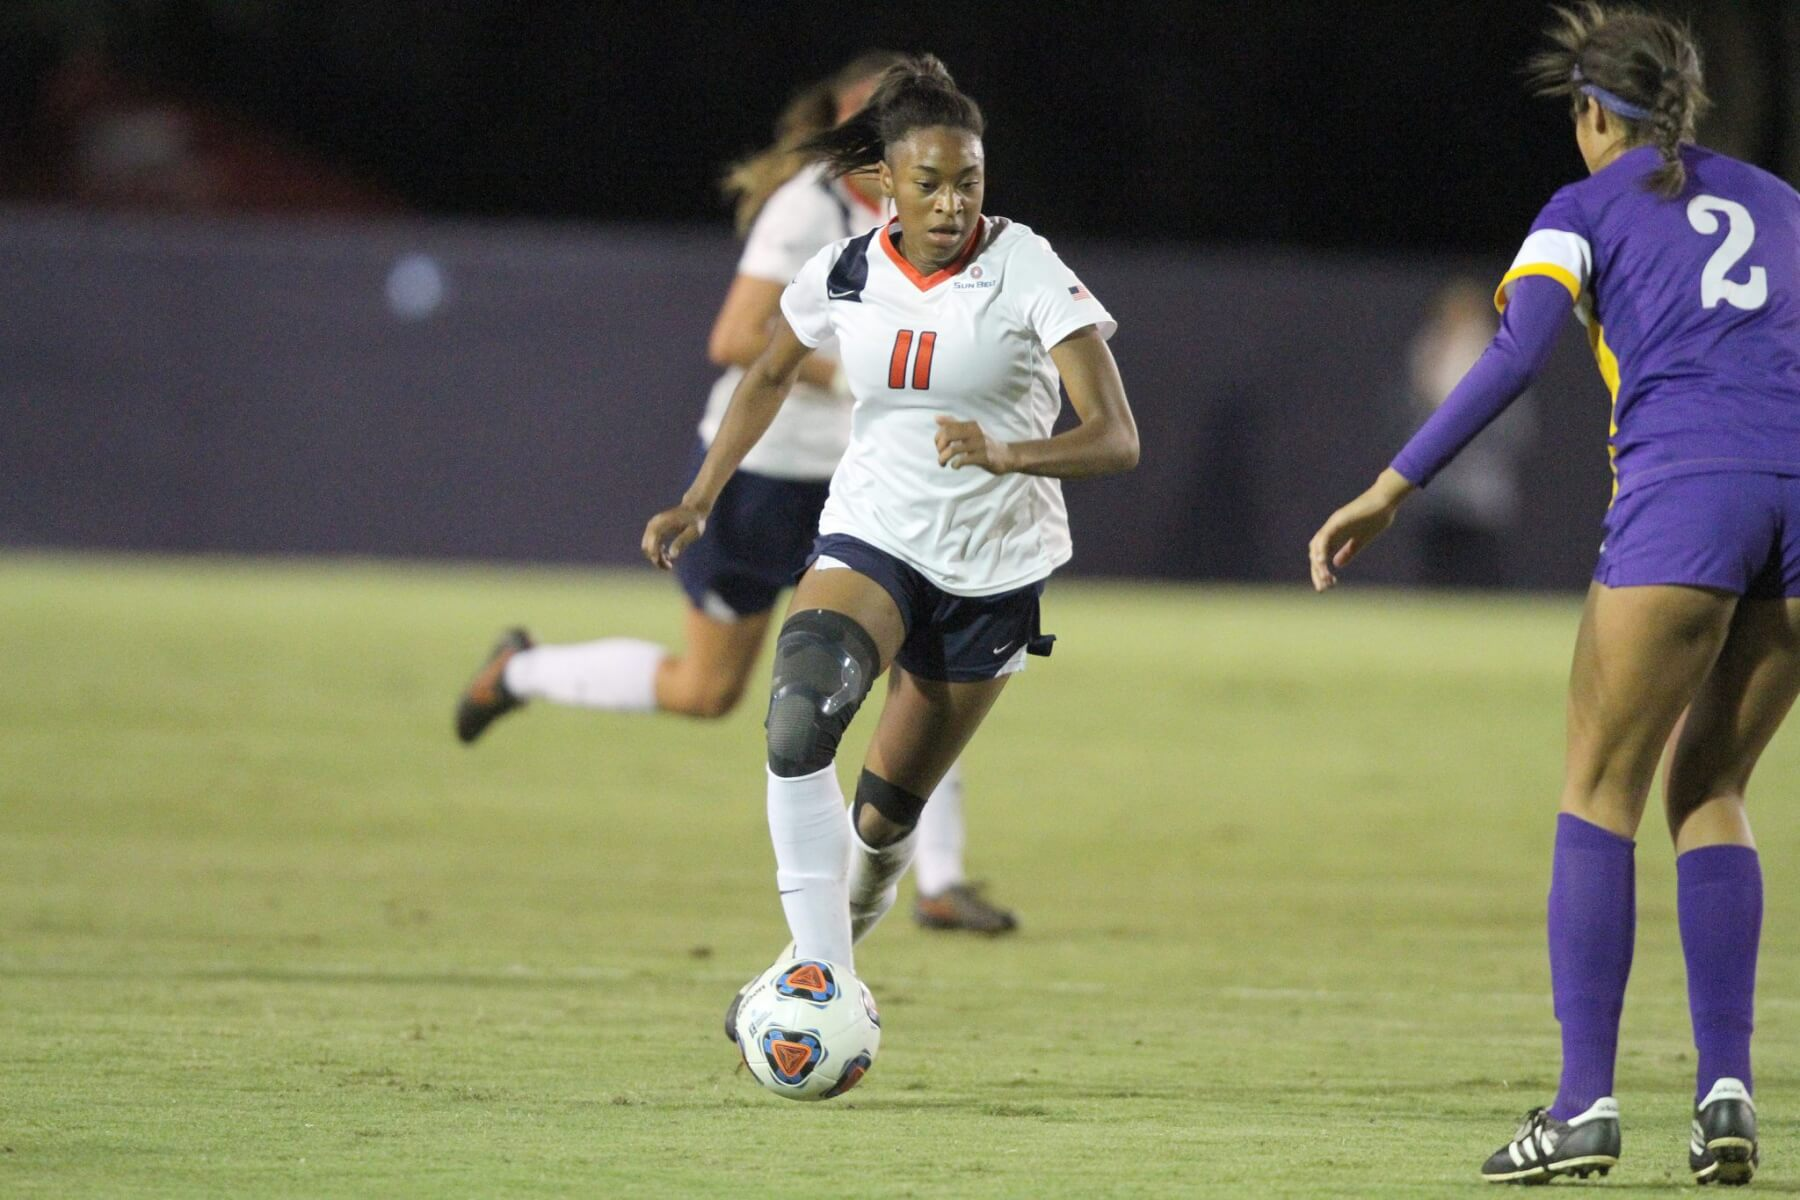 College soccer squads aim for even greater success in 2016